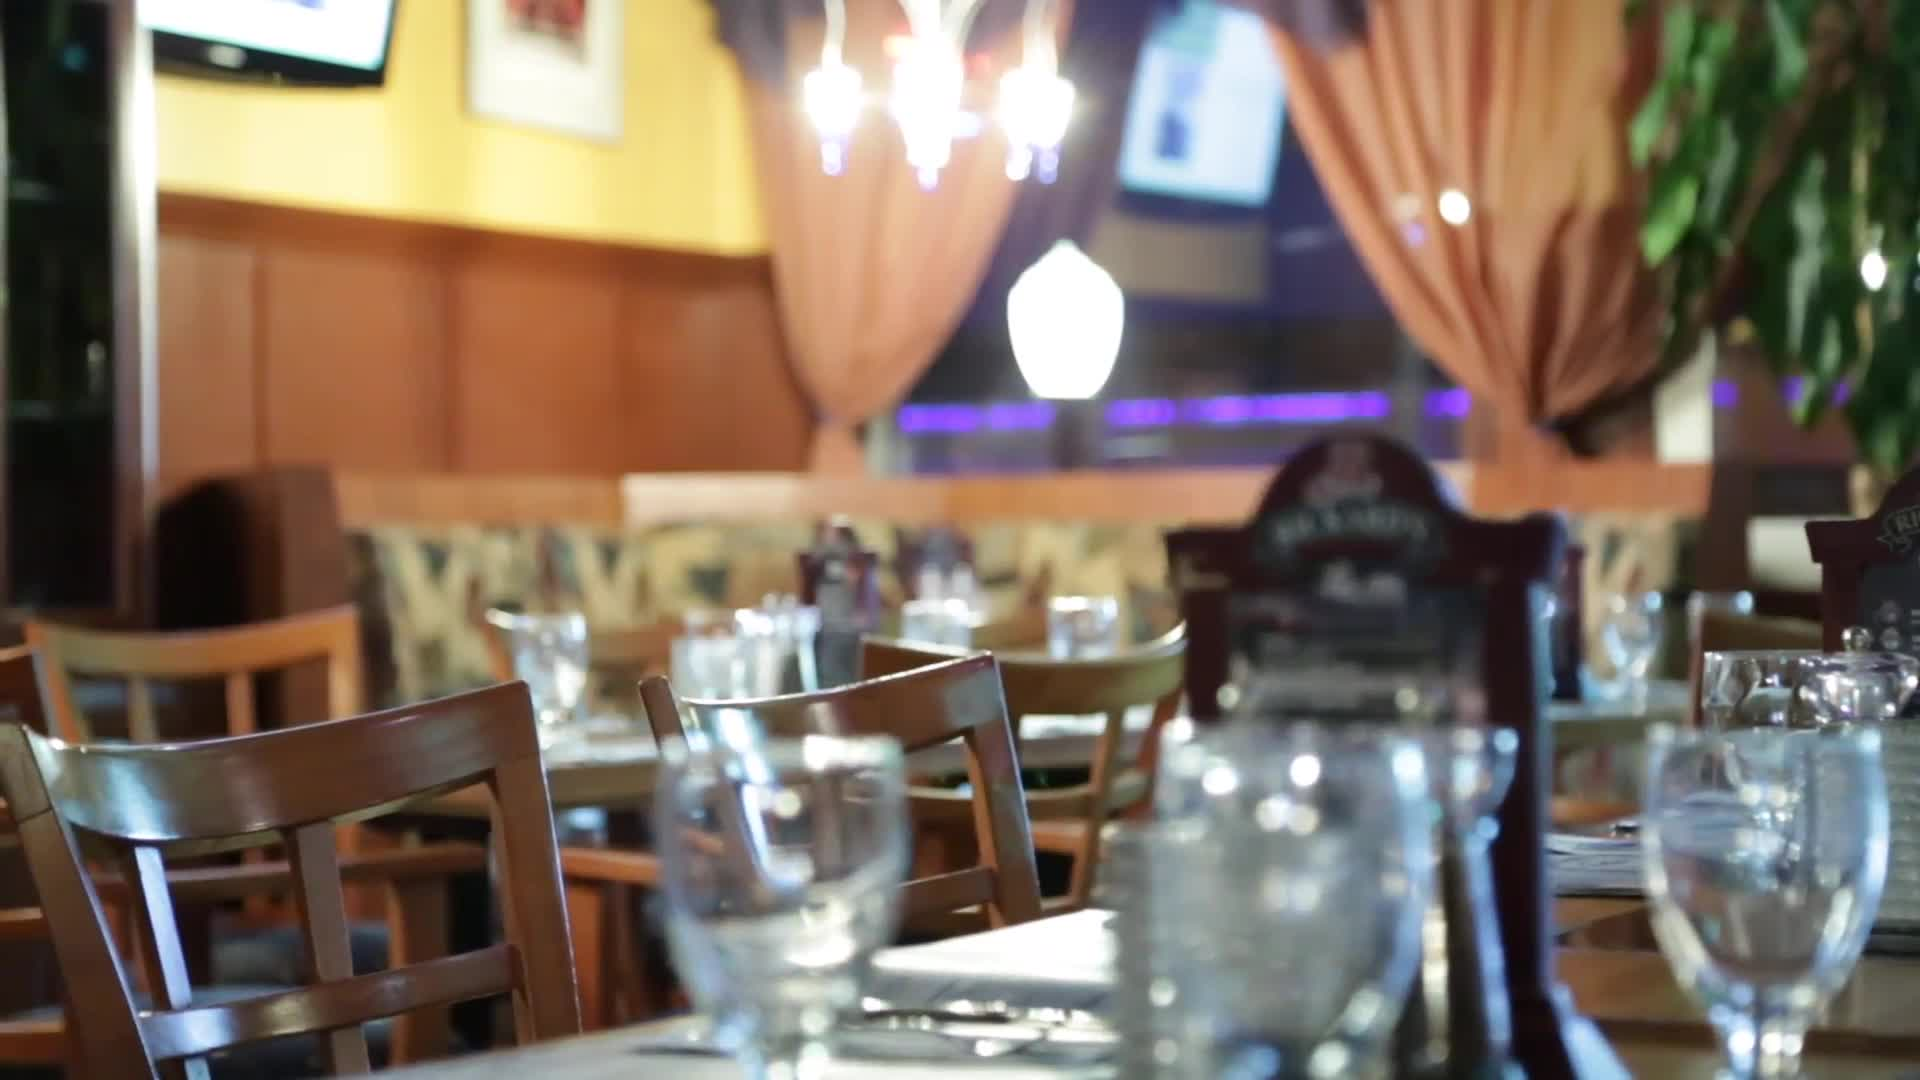 Brasserie Mario Tremblay - Pizza et pizzérias - 4186687231